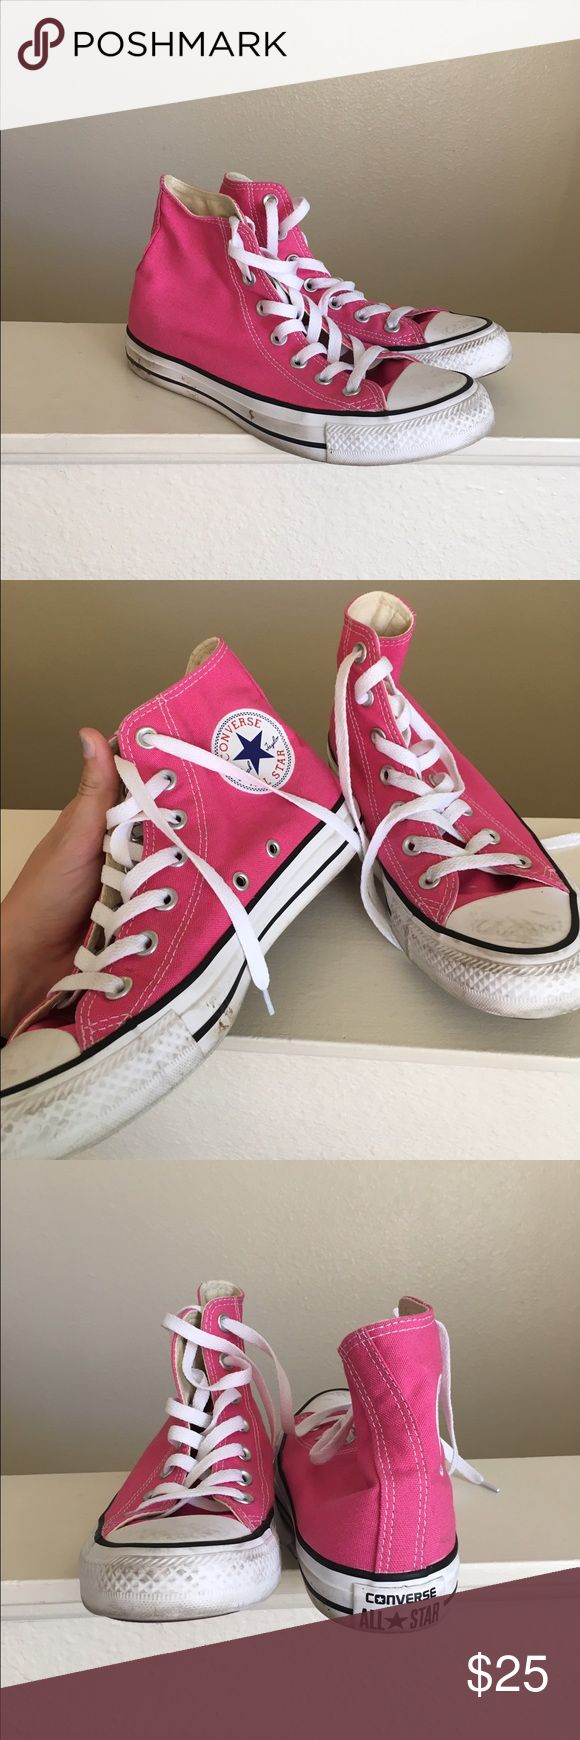 Pink High Top Converse Size 7 bright pink high top classic sneakers by Converse. Some scuffs on the toes and need to be cleaned up a little bit on the sides of the soles. No tears or signs of wear other than the scuffs. Open to offers; bundles discounted! Converse Shoes Sneakers